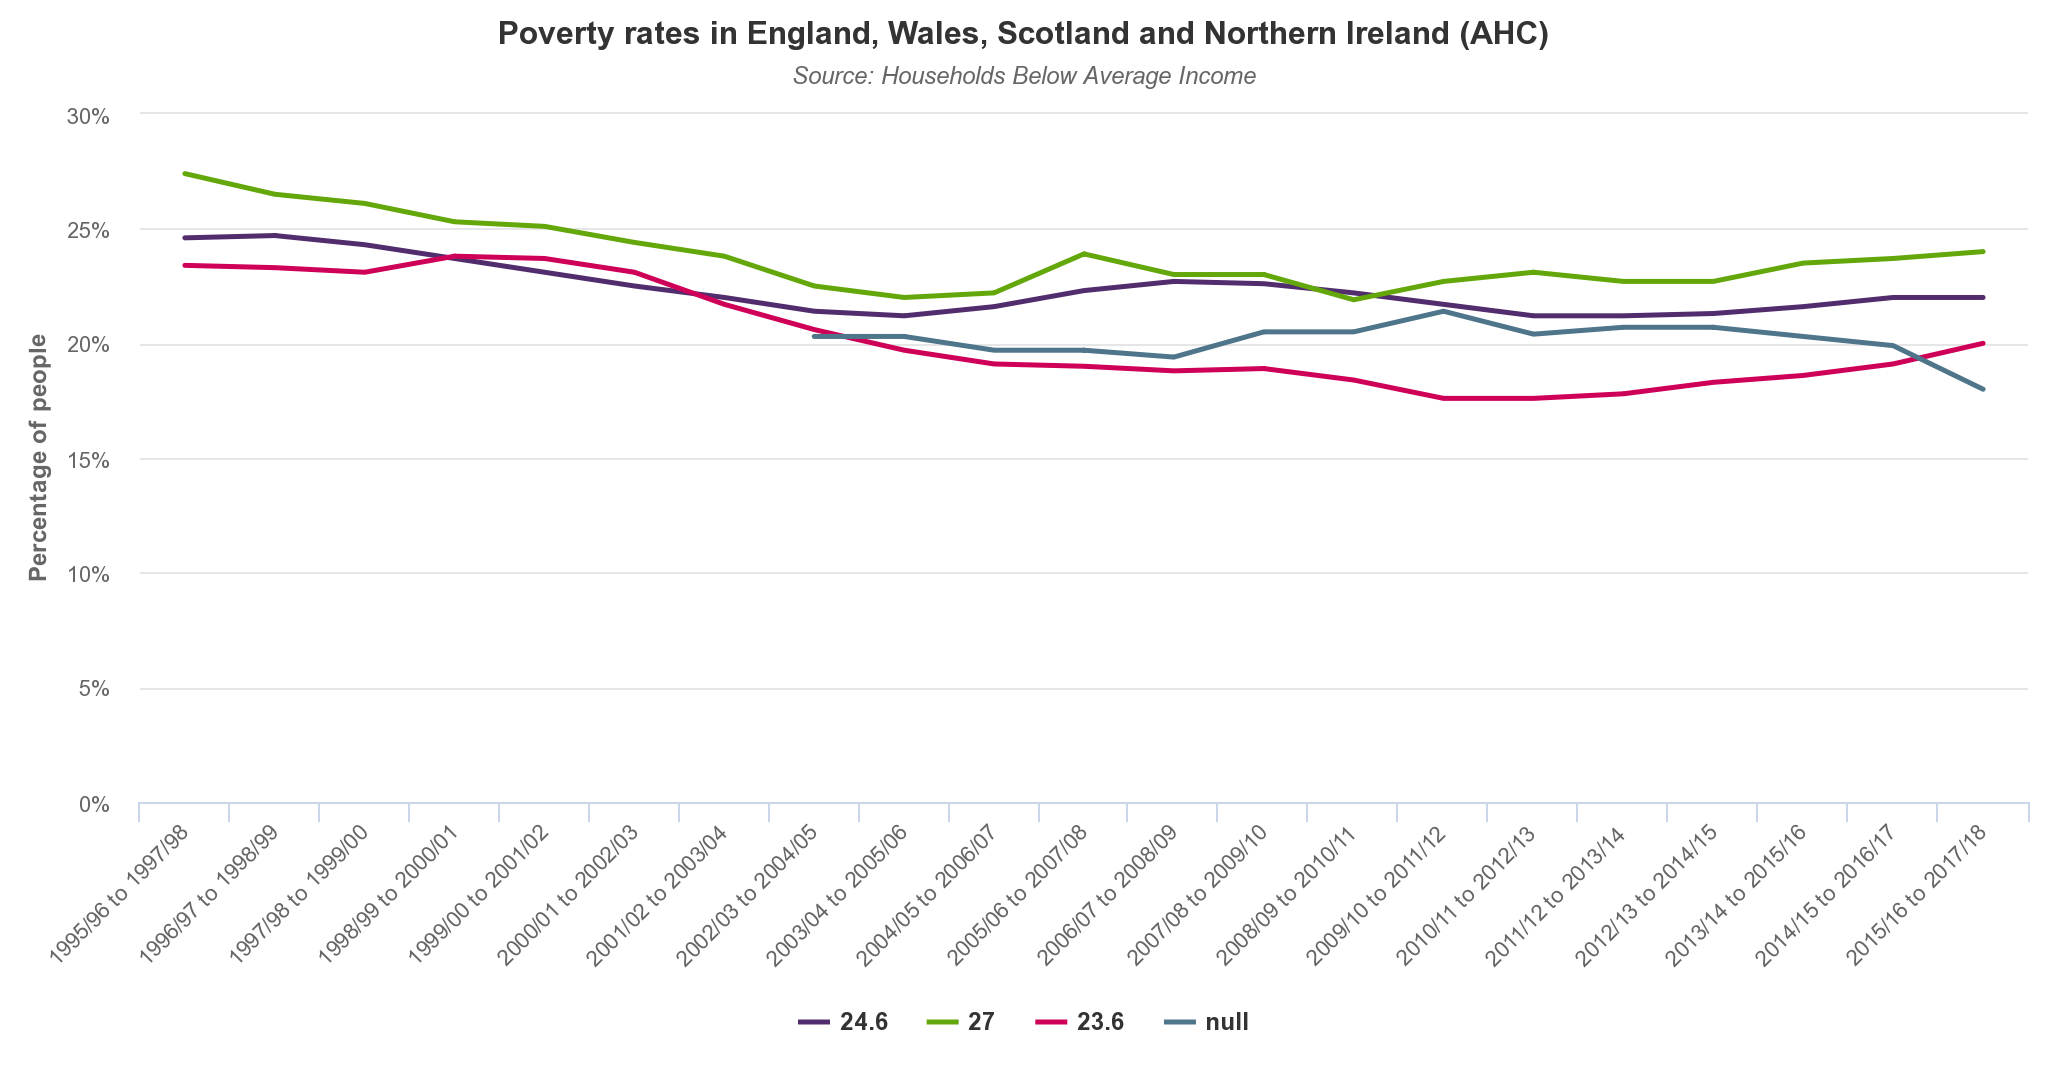 Poverty levels and trends in England, Wales, Scotland and Northern